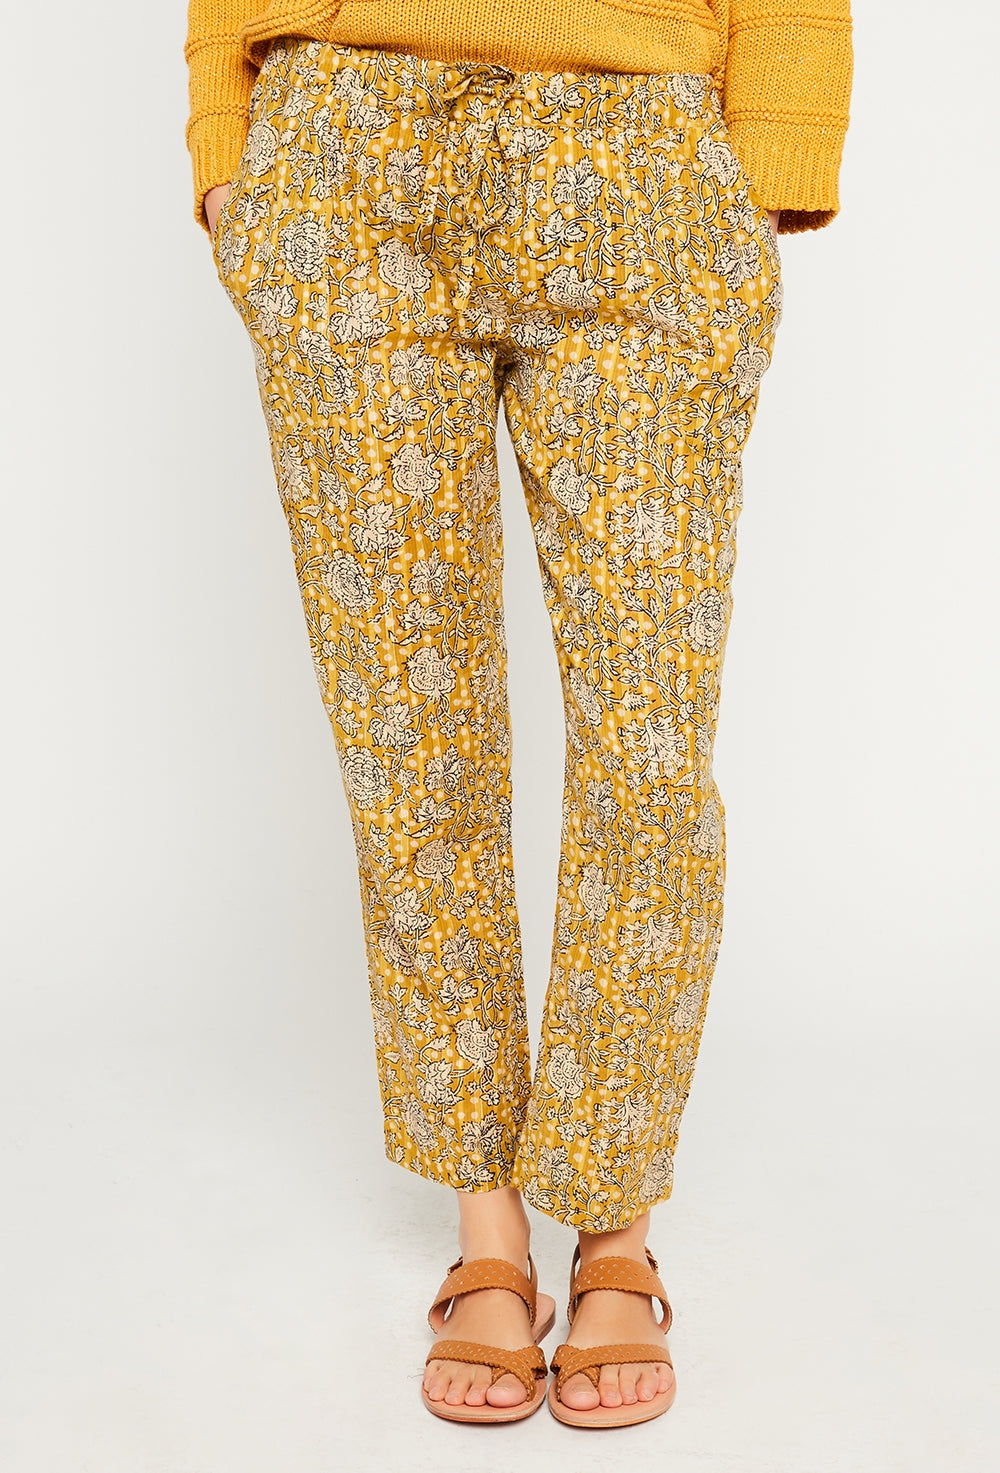 STELLA FOREST - Chiara Pants online at PAYA boutique